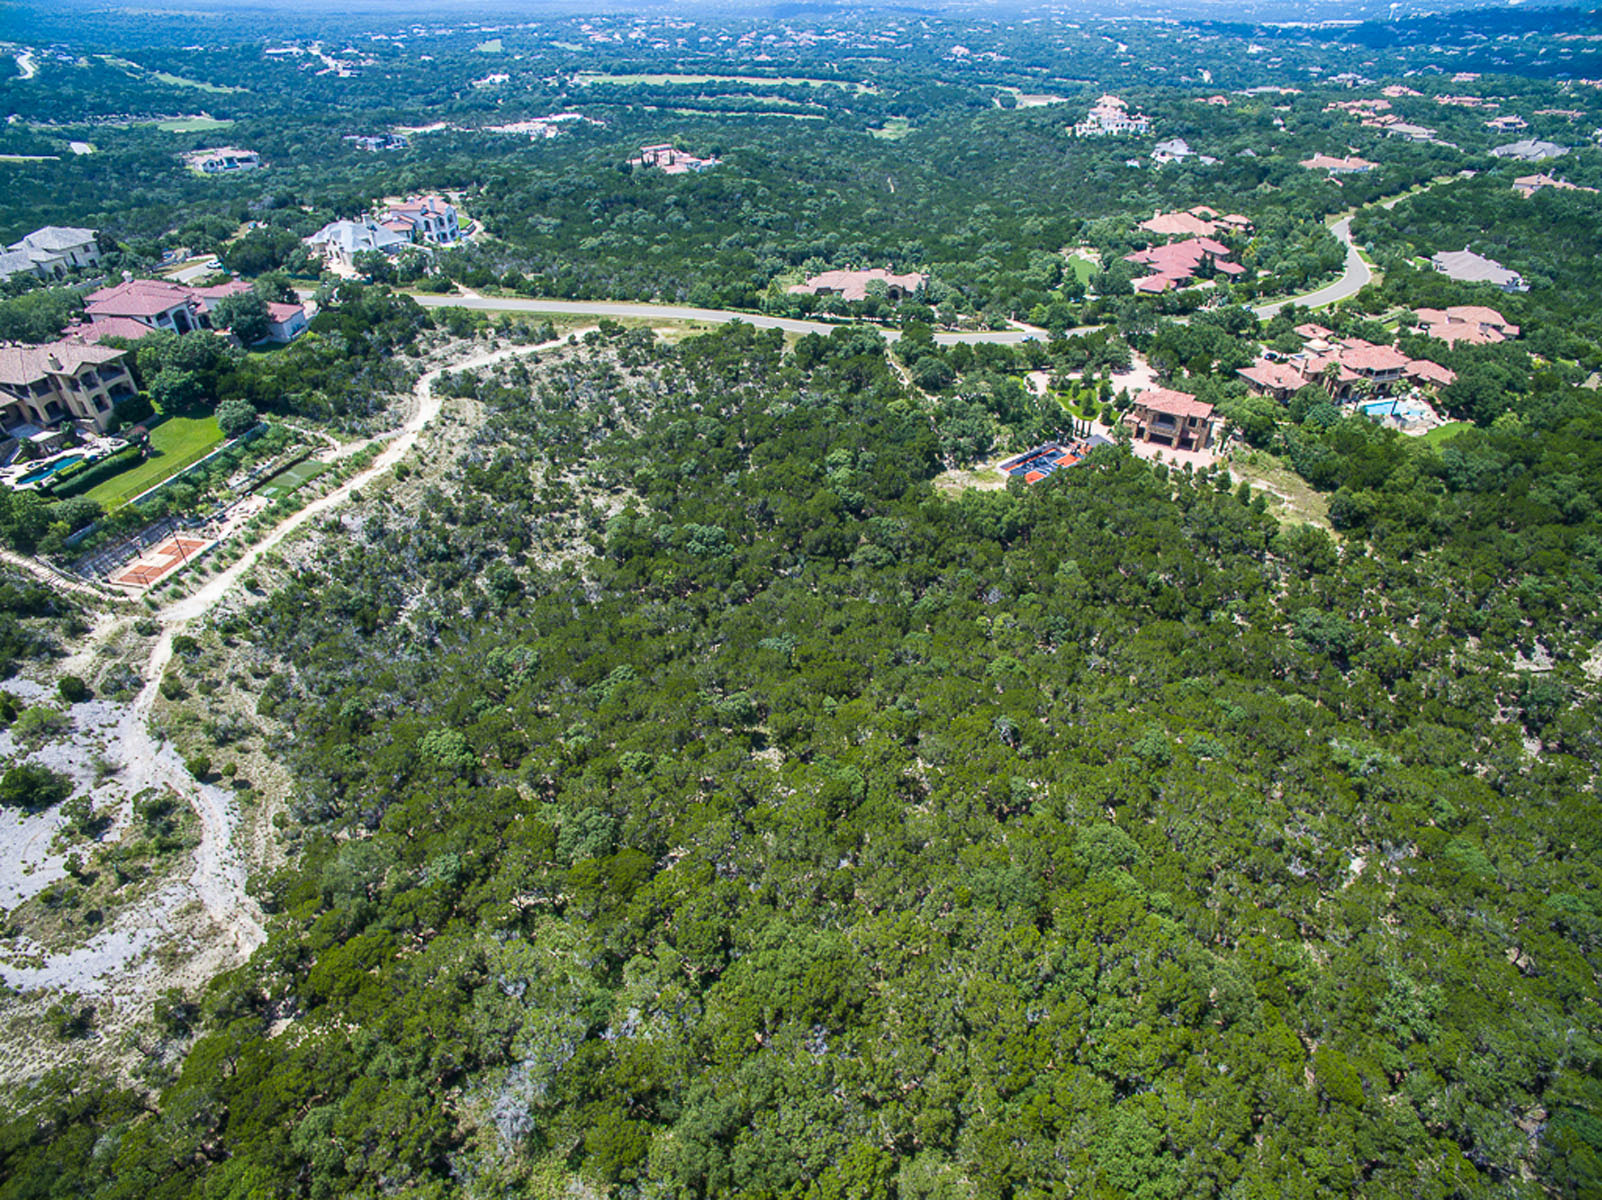 Land for Sale at Hill Country and Valley Views 4509 Mirador Dr Barton Creek, Austin, Texas, 78735 United States